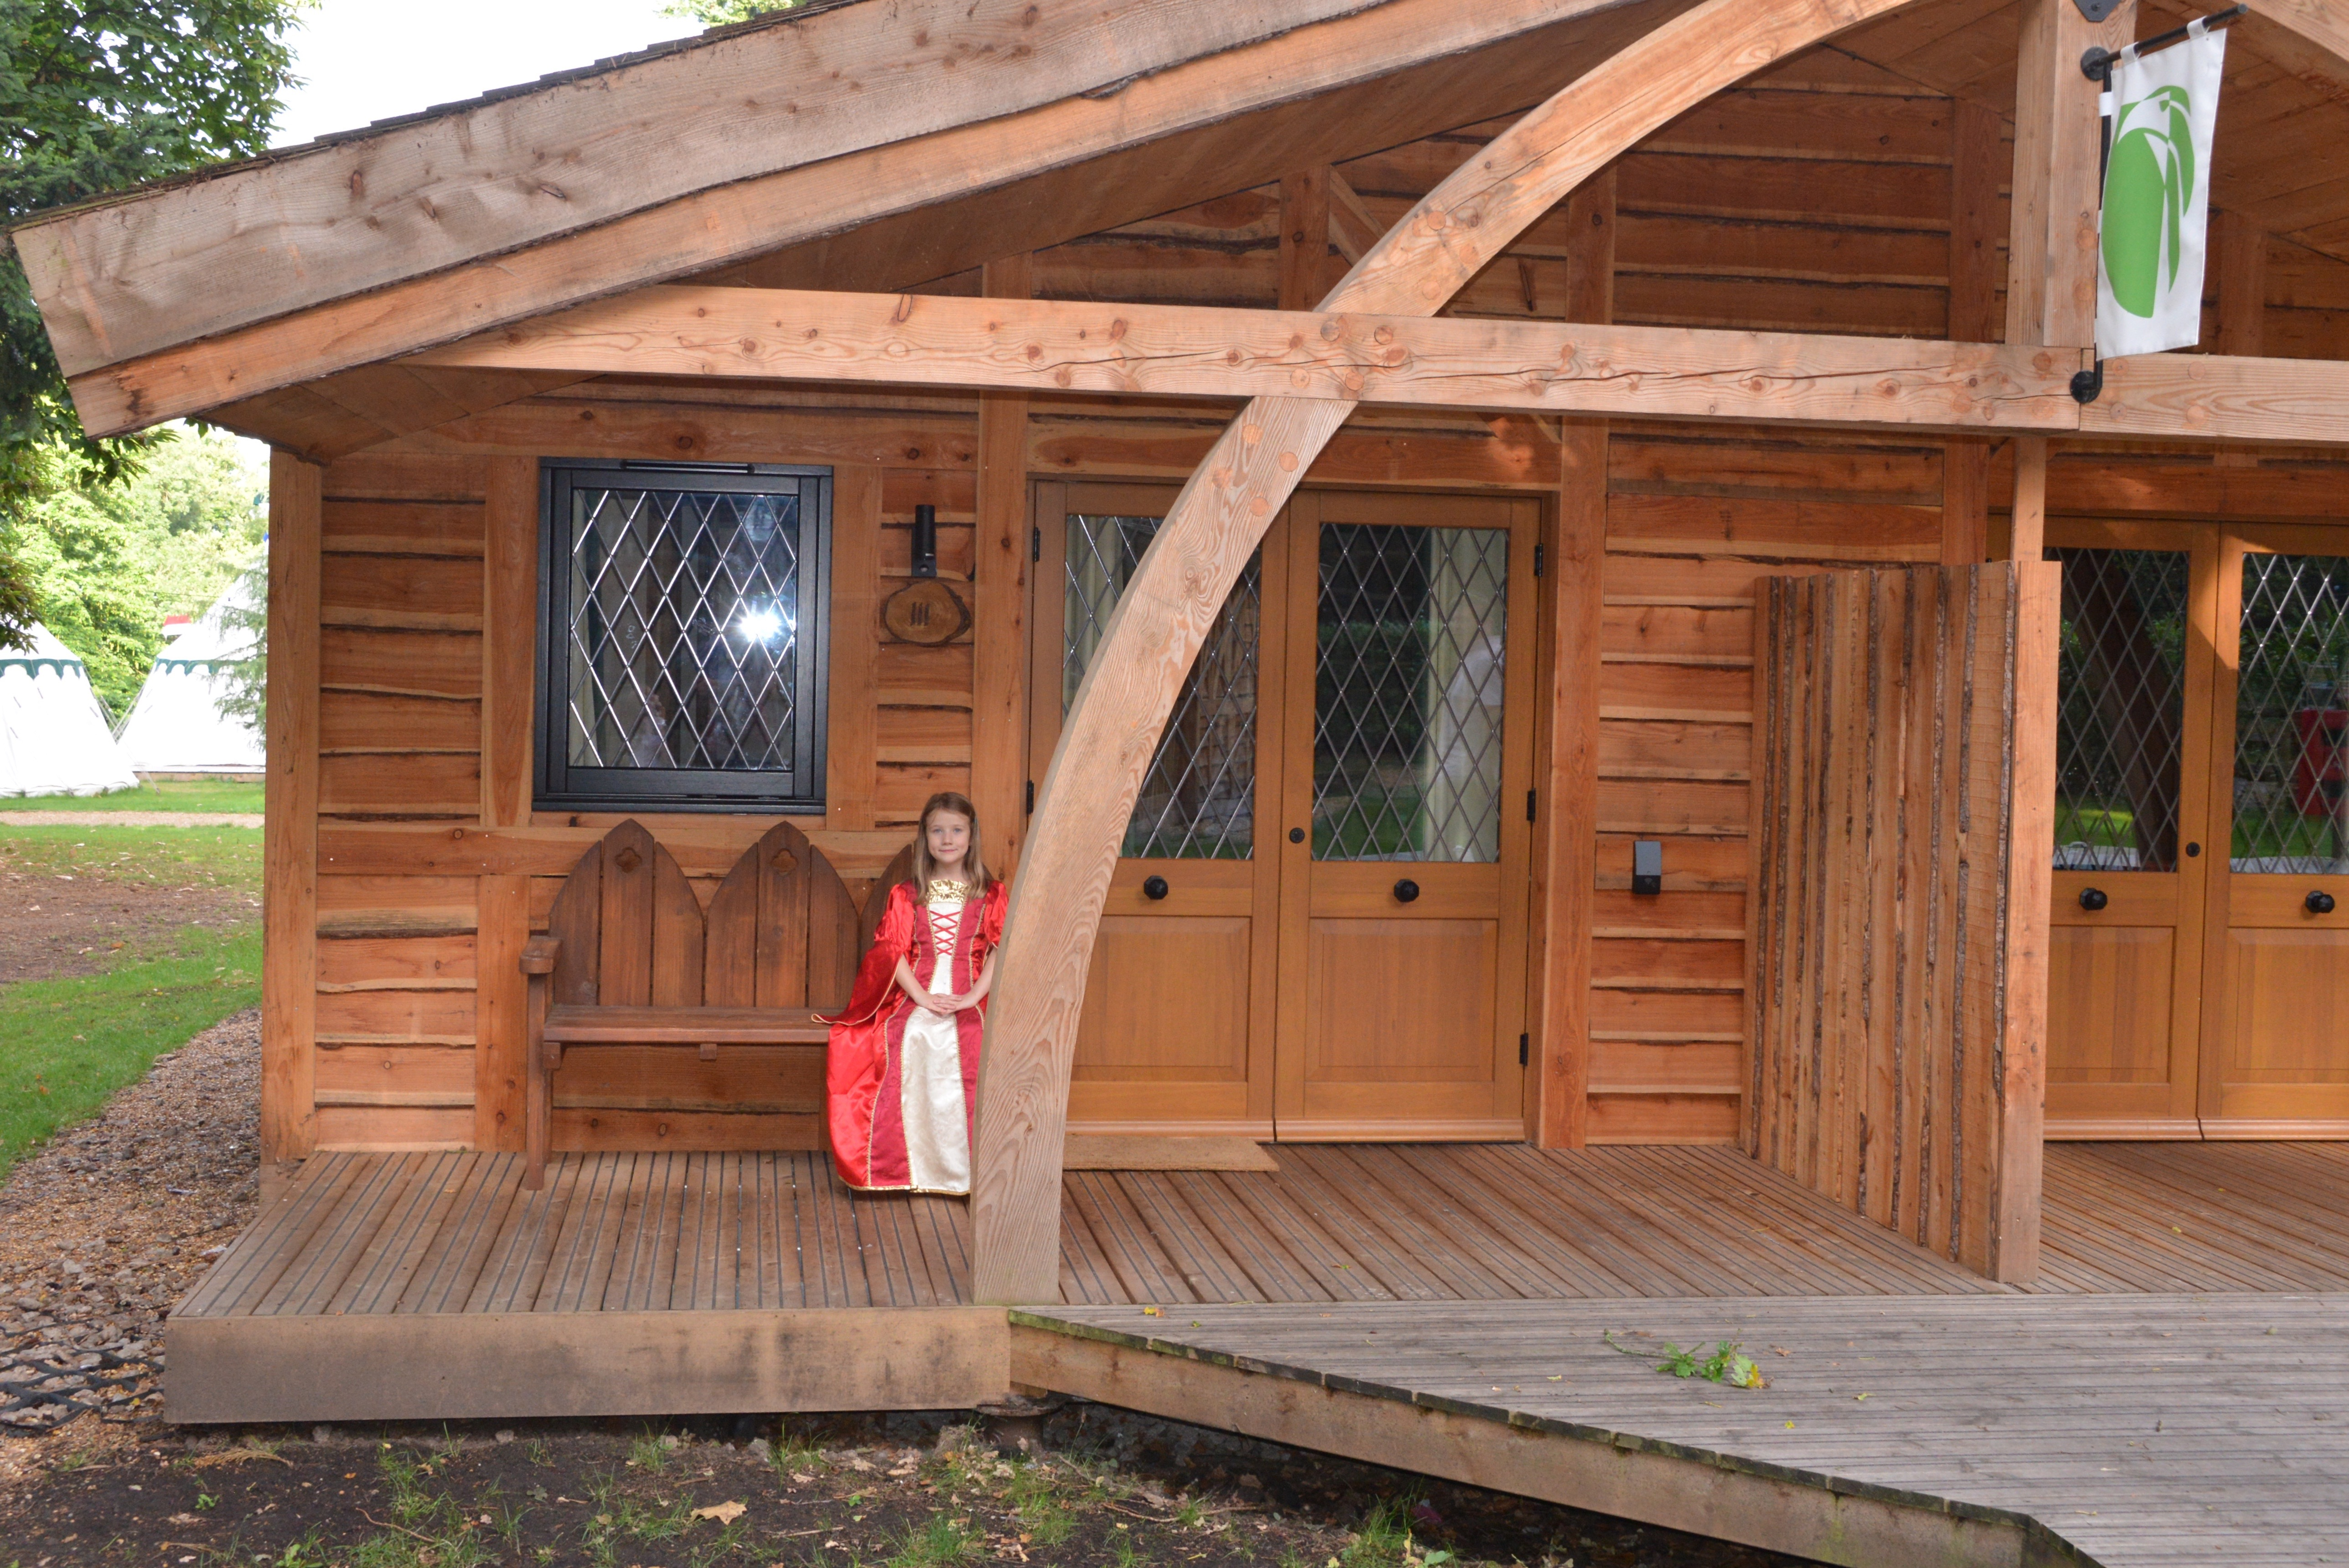 Woodland Lodges sleep up to five in two bedrooms on one floor while a  Knight's Lodges sleep up to seven across two storeys, including a mezzanine level with master bedroom.